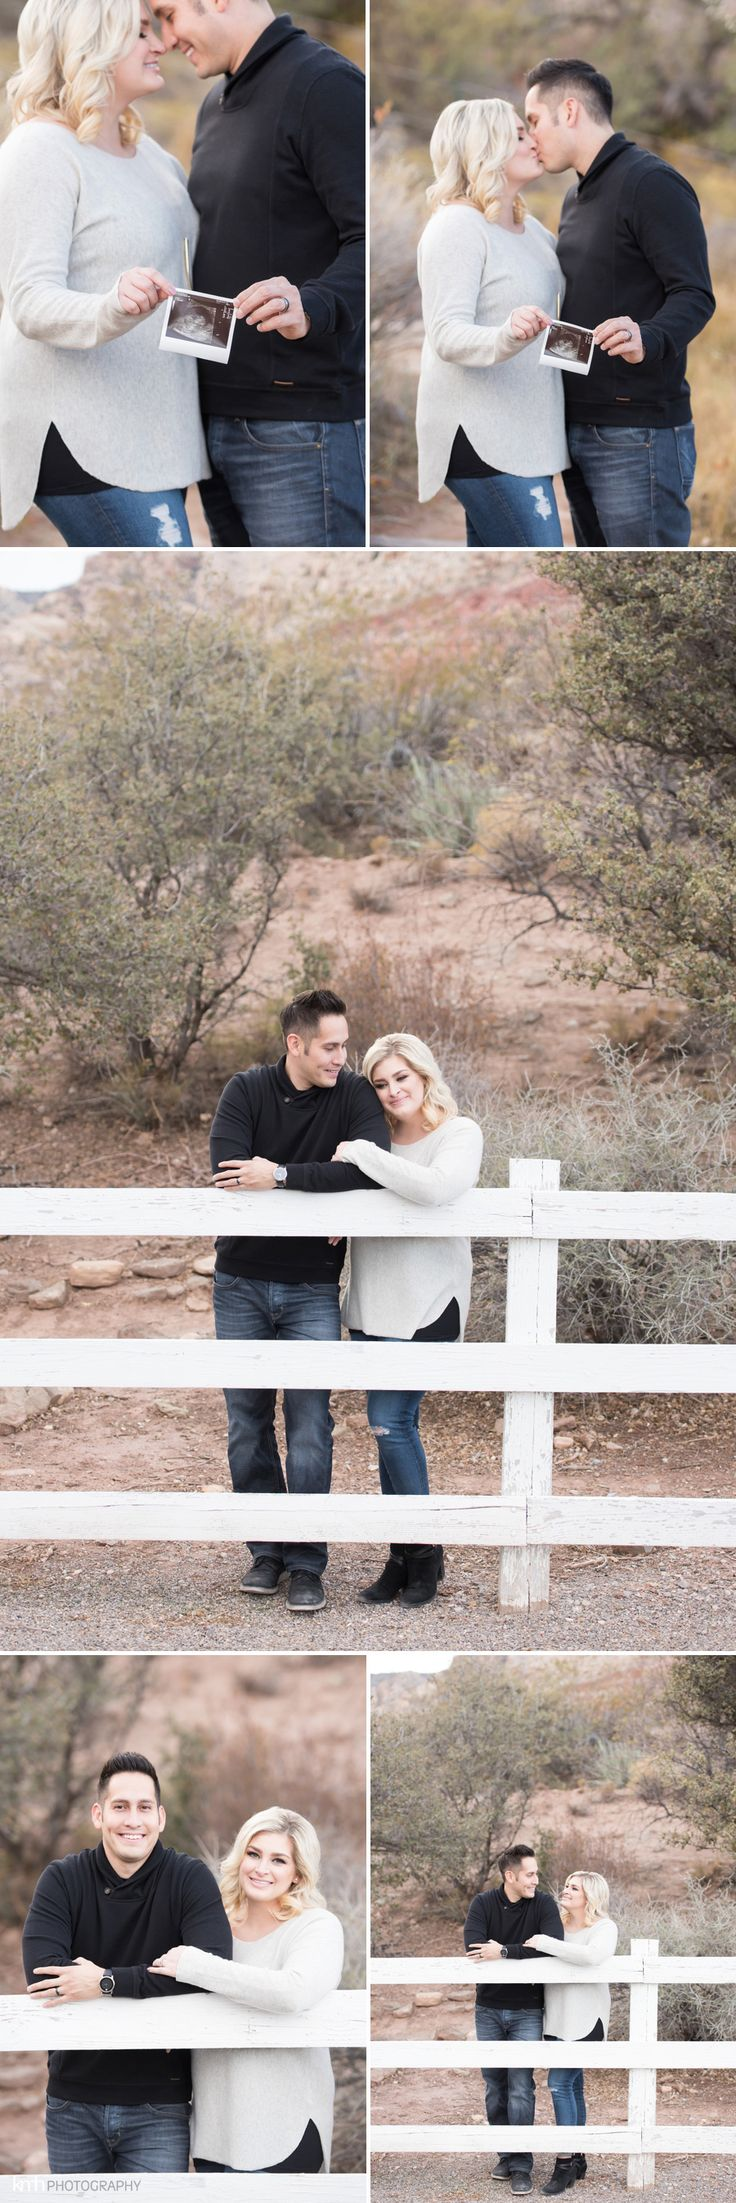 Pregnancy Announcement & Couple's Session at Spring Mountain Ranch | KMH Photography, Las Vegas Portrait Photographer